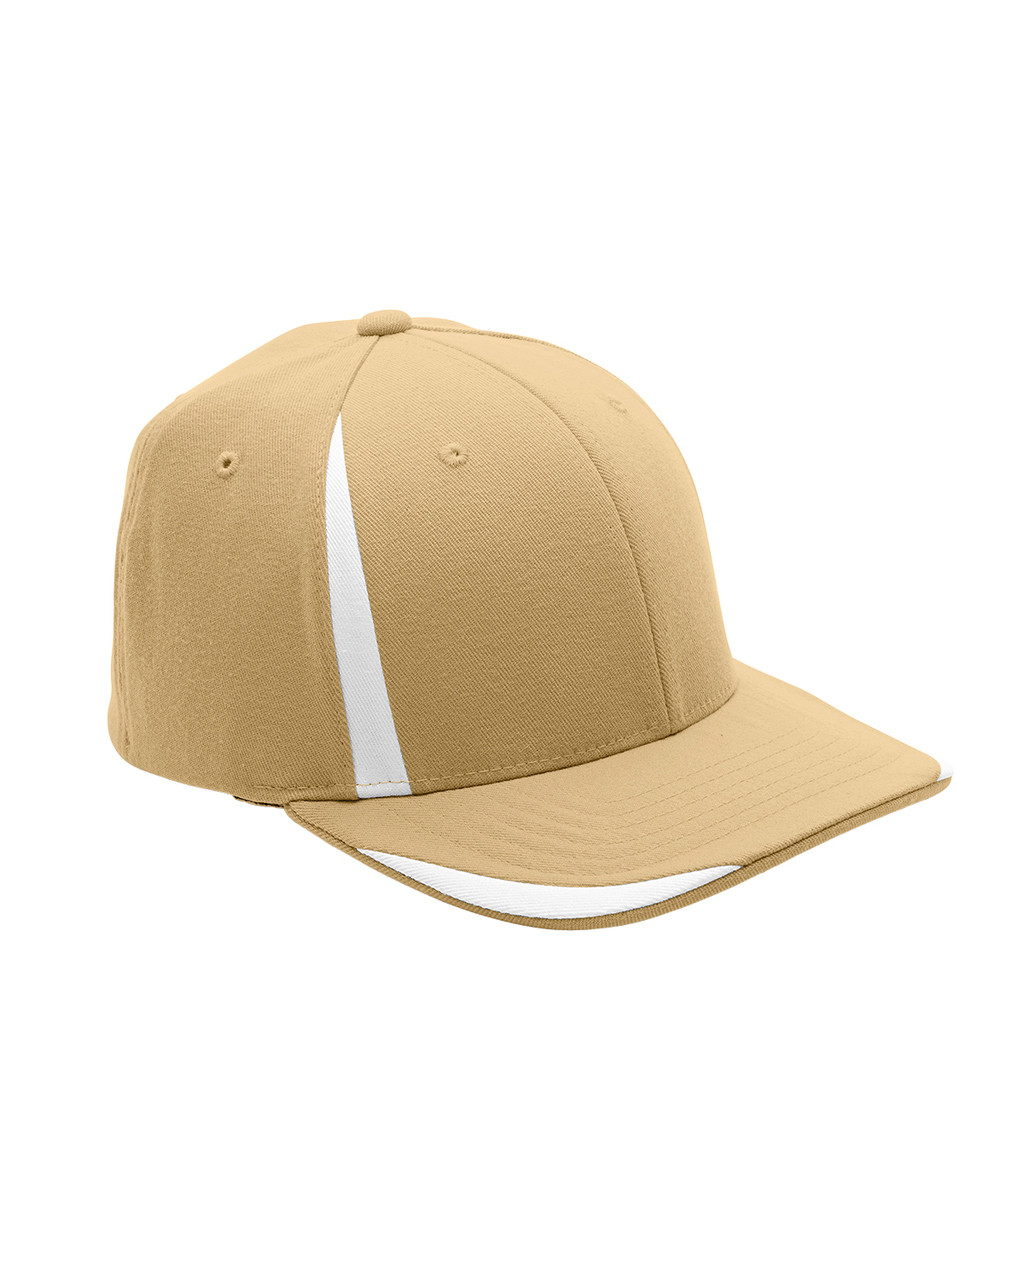 Vegas Gold/White - ATB102 Flexfit for Team 365 Pro-Formance Front Sweep Cap